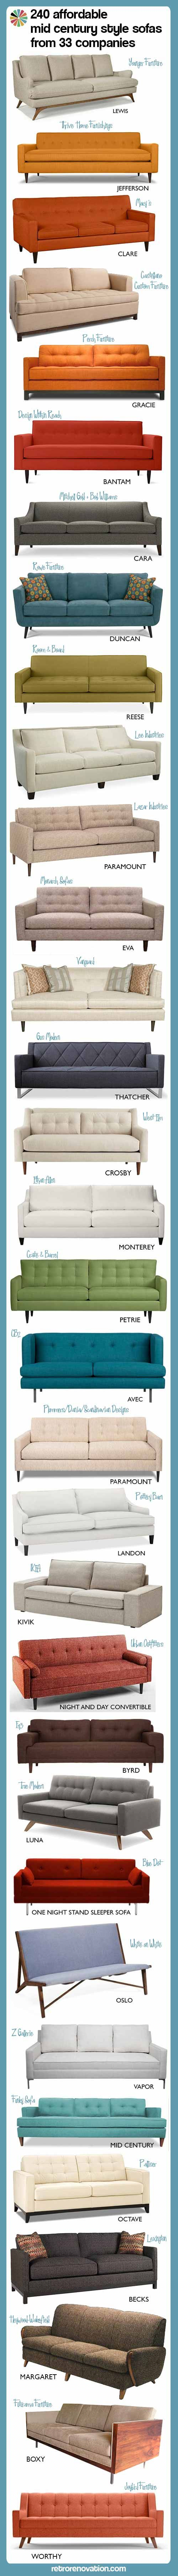 240 Affordable Mid Century Modern Style Sofas From 33 Companies Retro Renovation